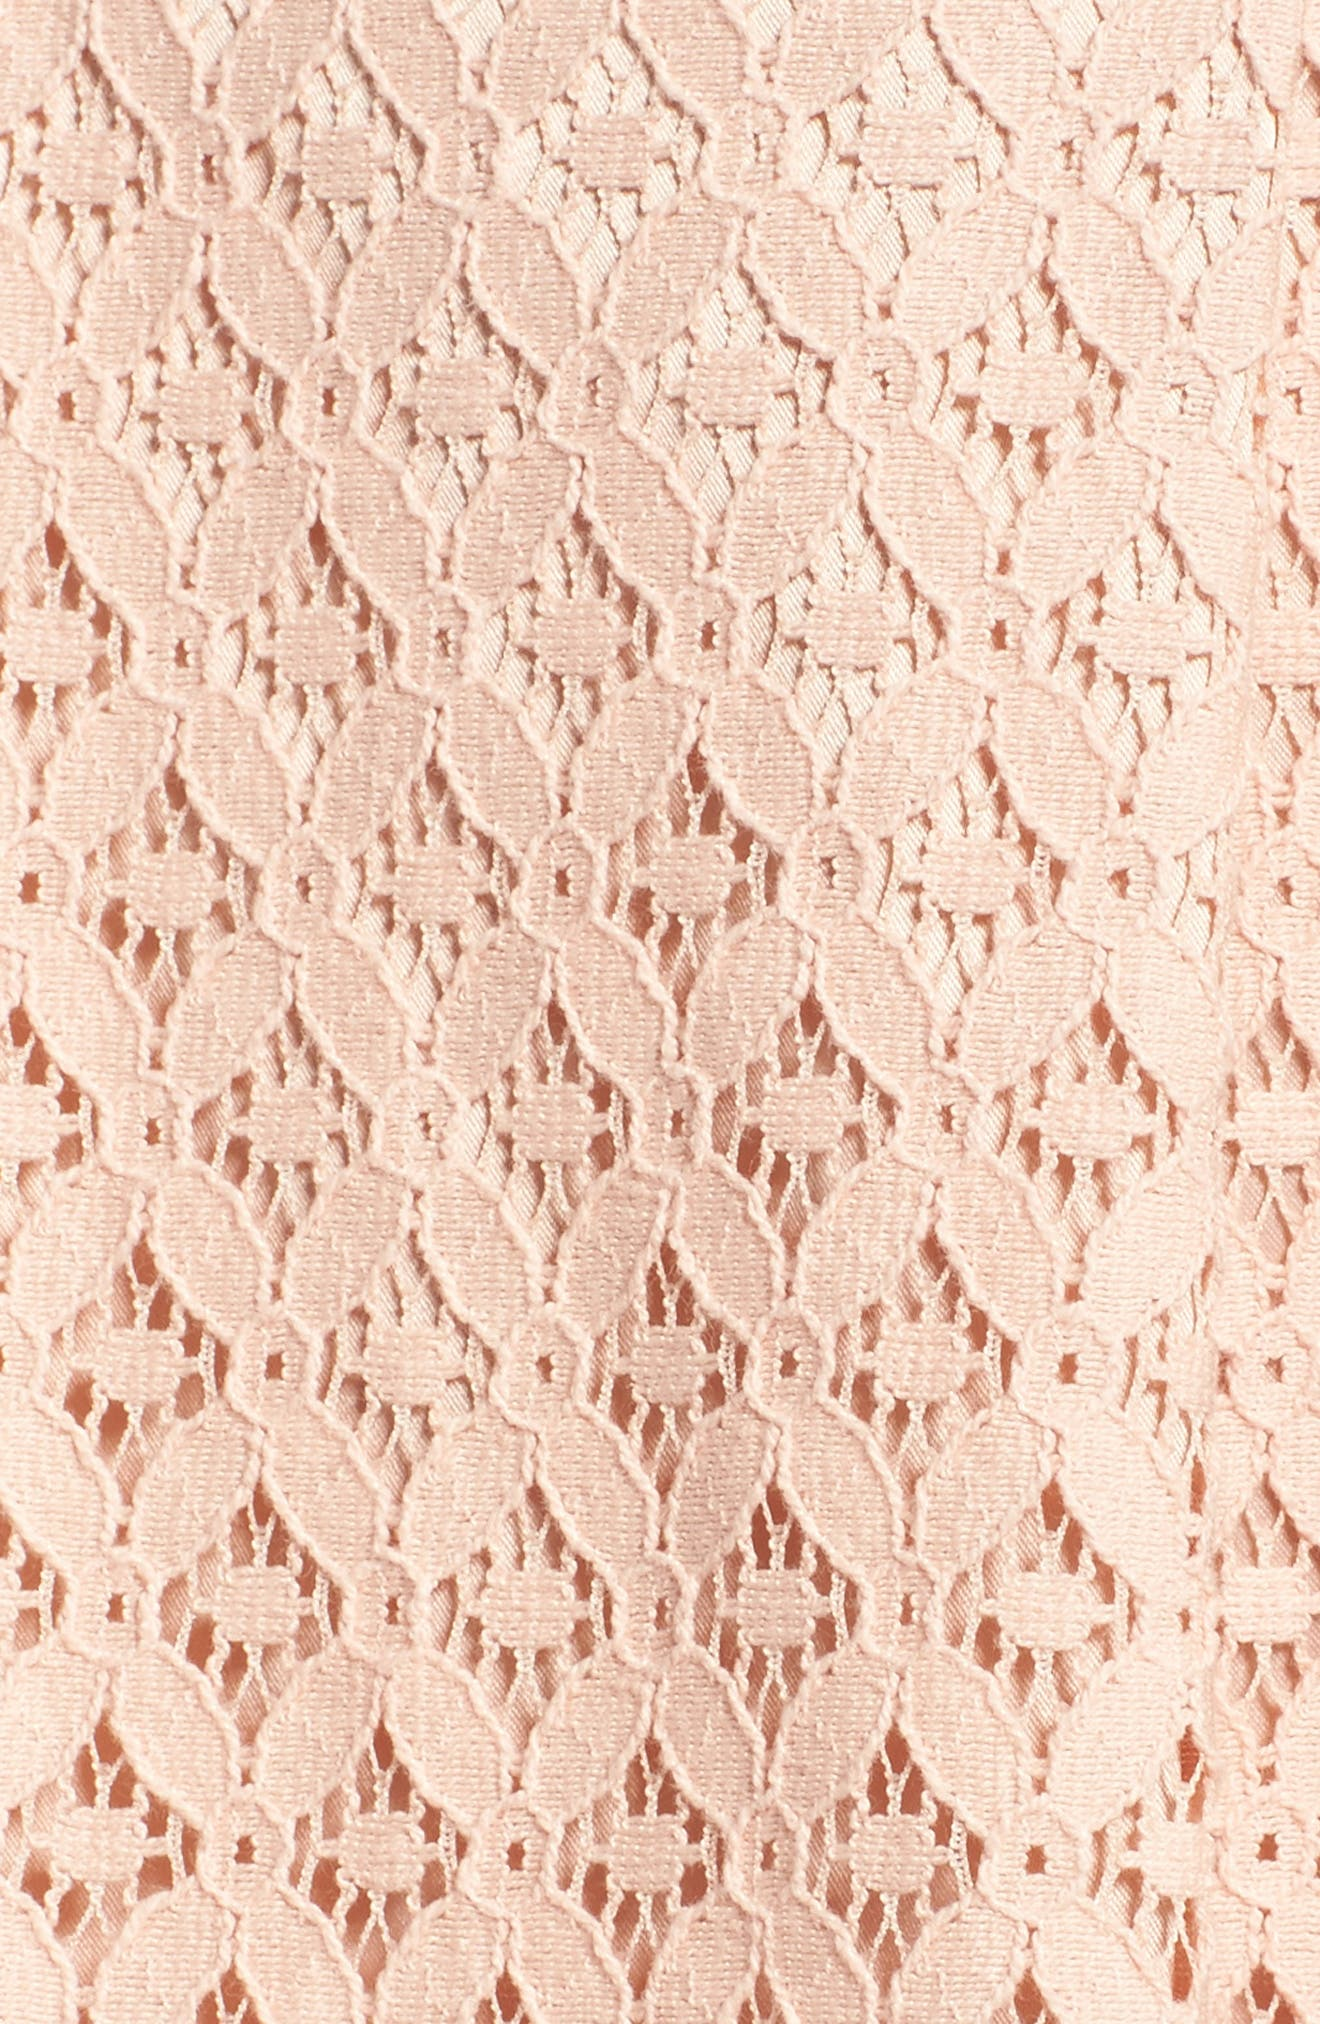 Banded Lace Midi Skirt,                             Alternate thumbnail 5, color,                             BLUSH